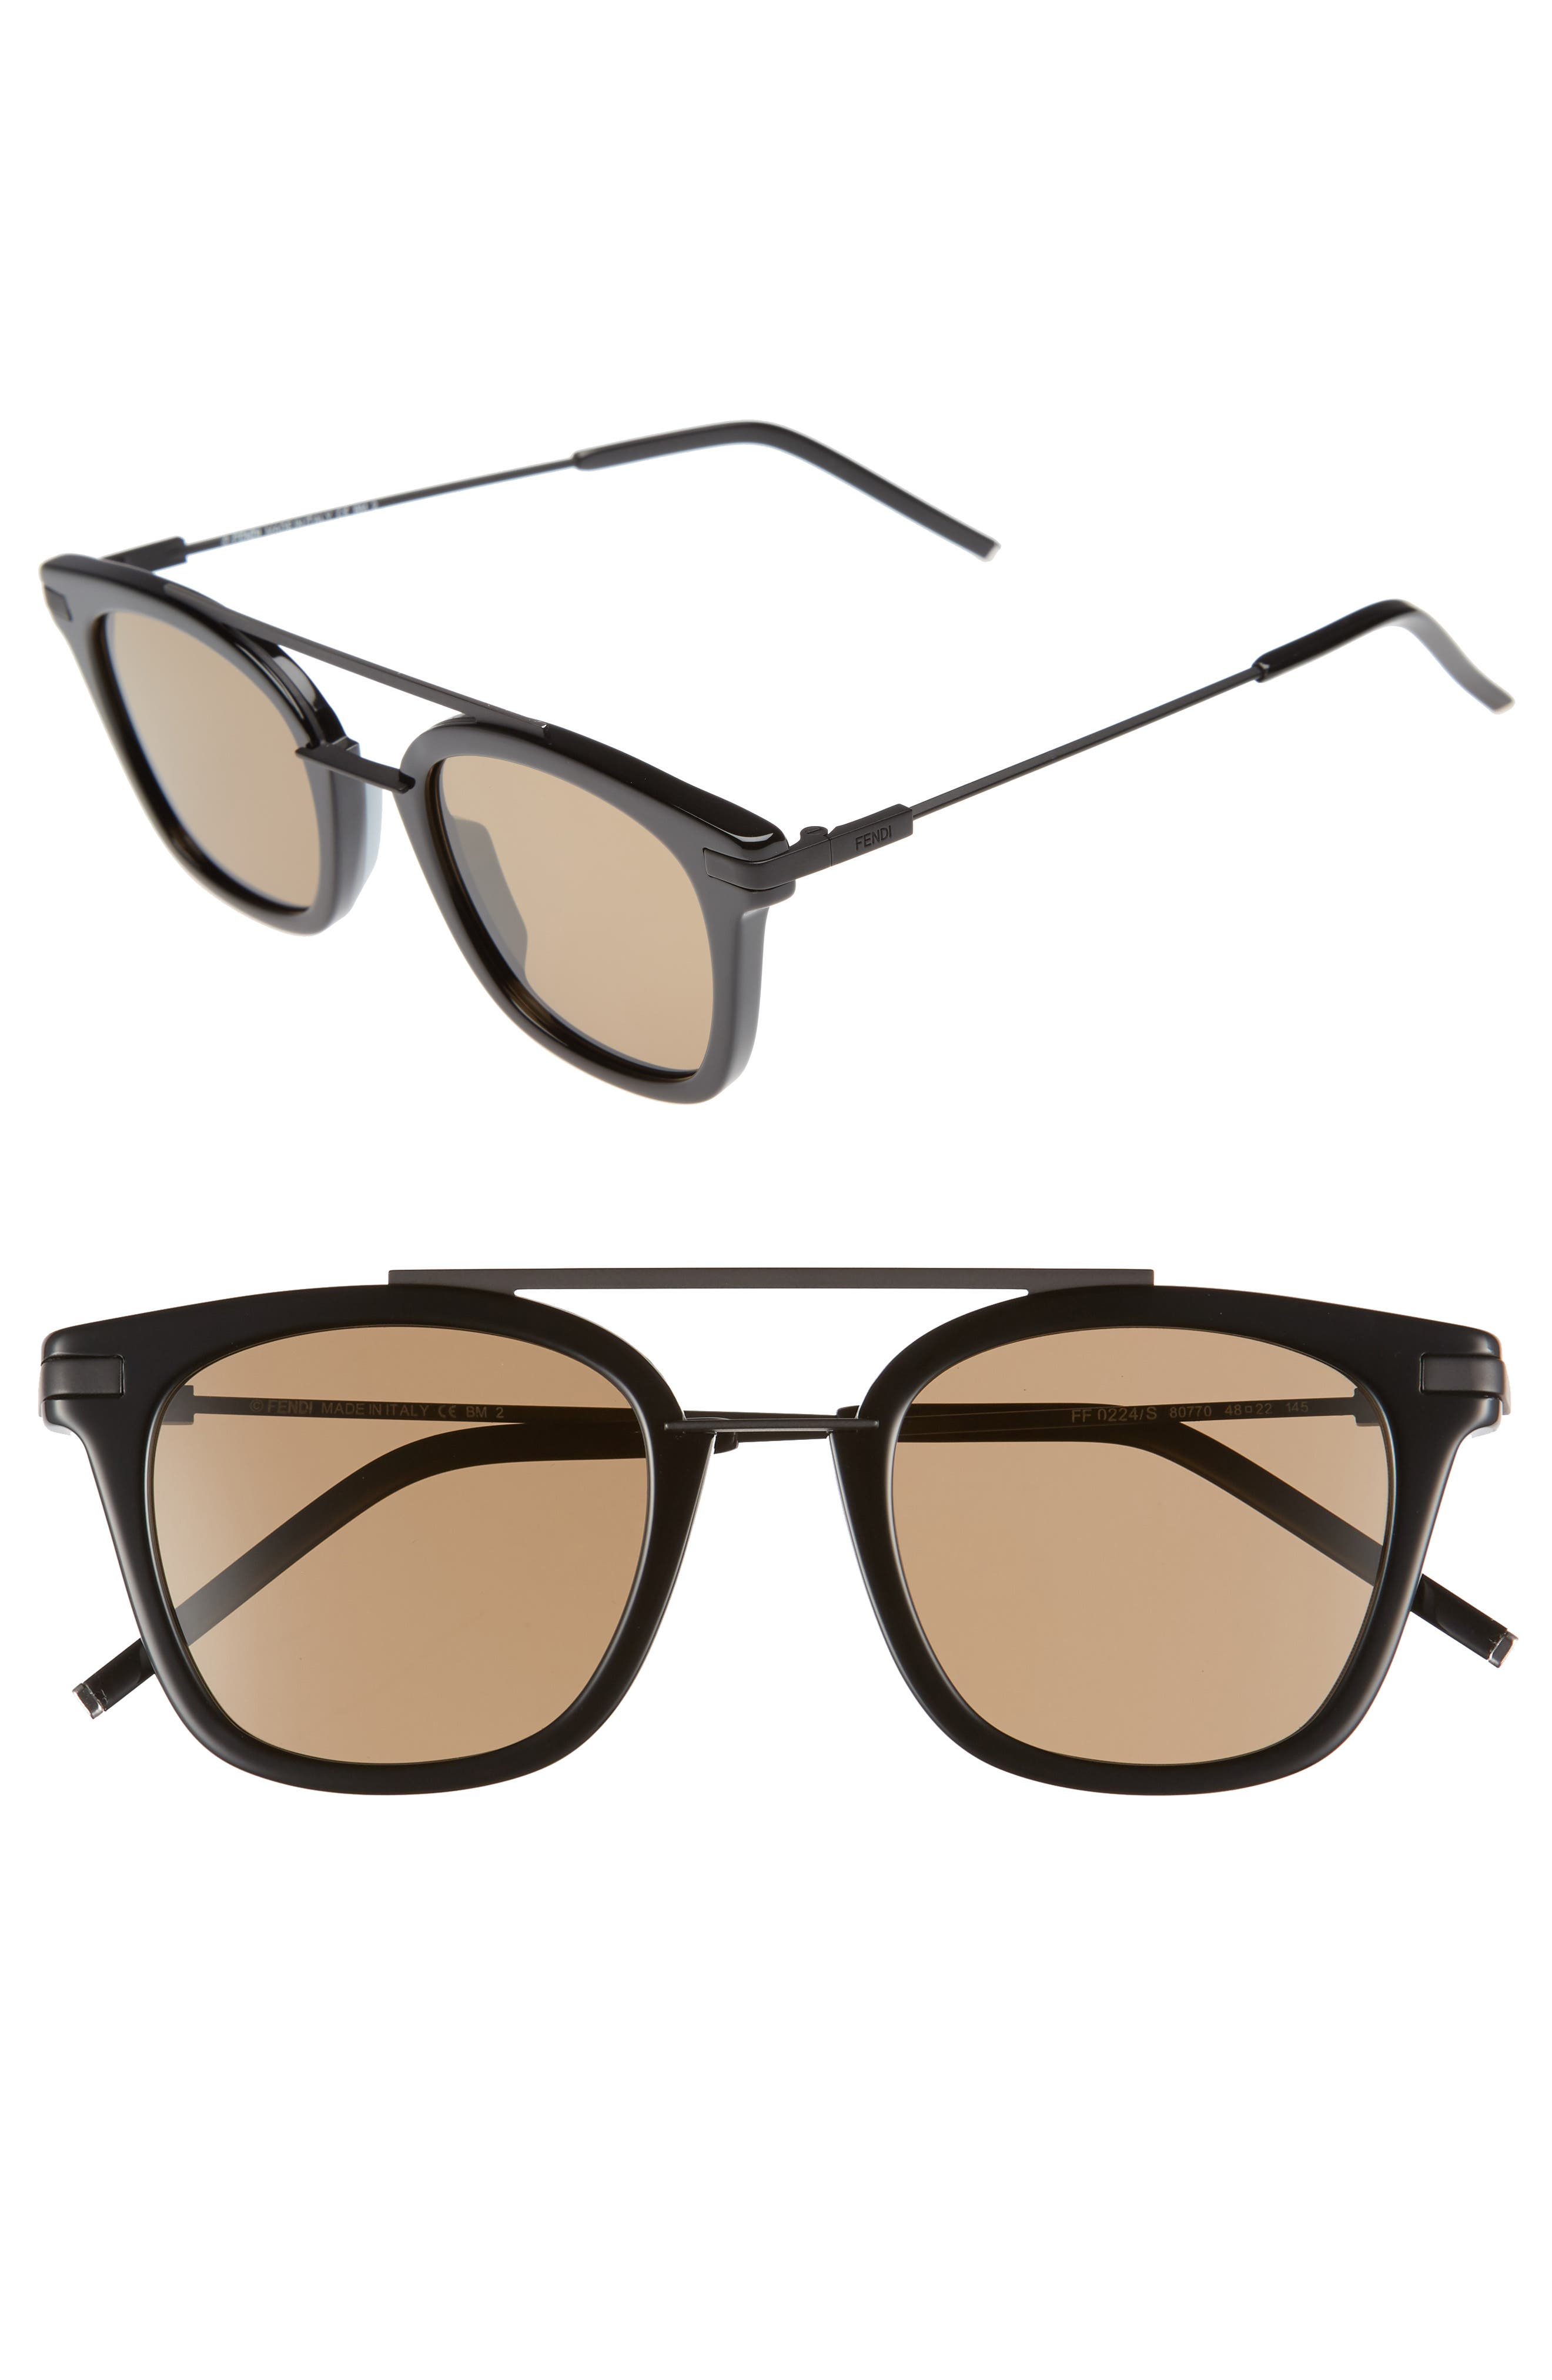 48mm Sunglasses,                             Main thumbnail 1, color,                             BLACK